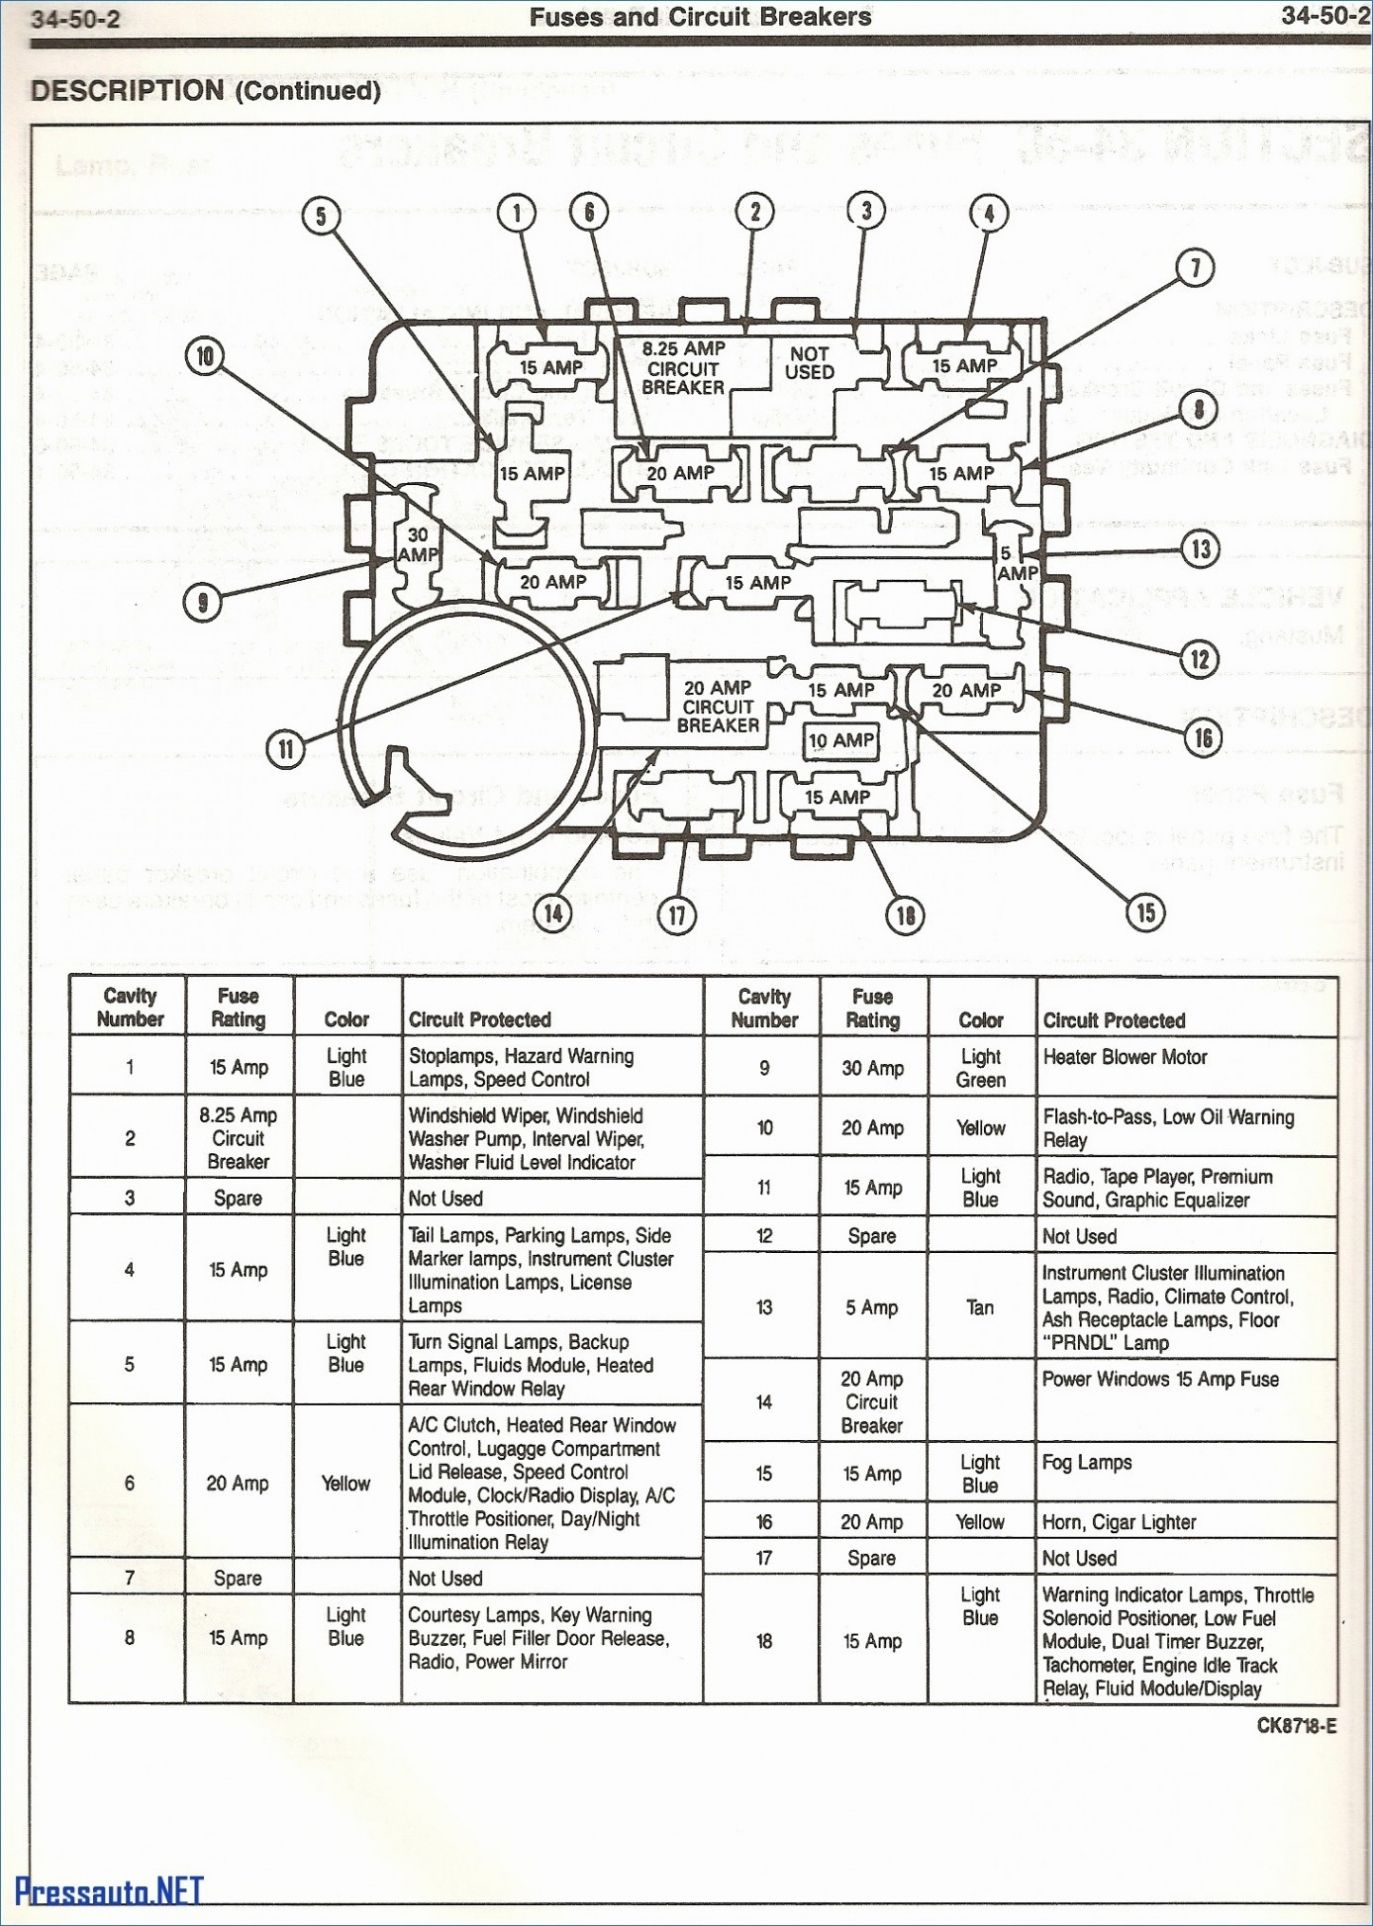 Image Result For Under Hood Fuse Box Wiring Diagram 1997 K1500 Fuse Box Ford Ranger F150